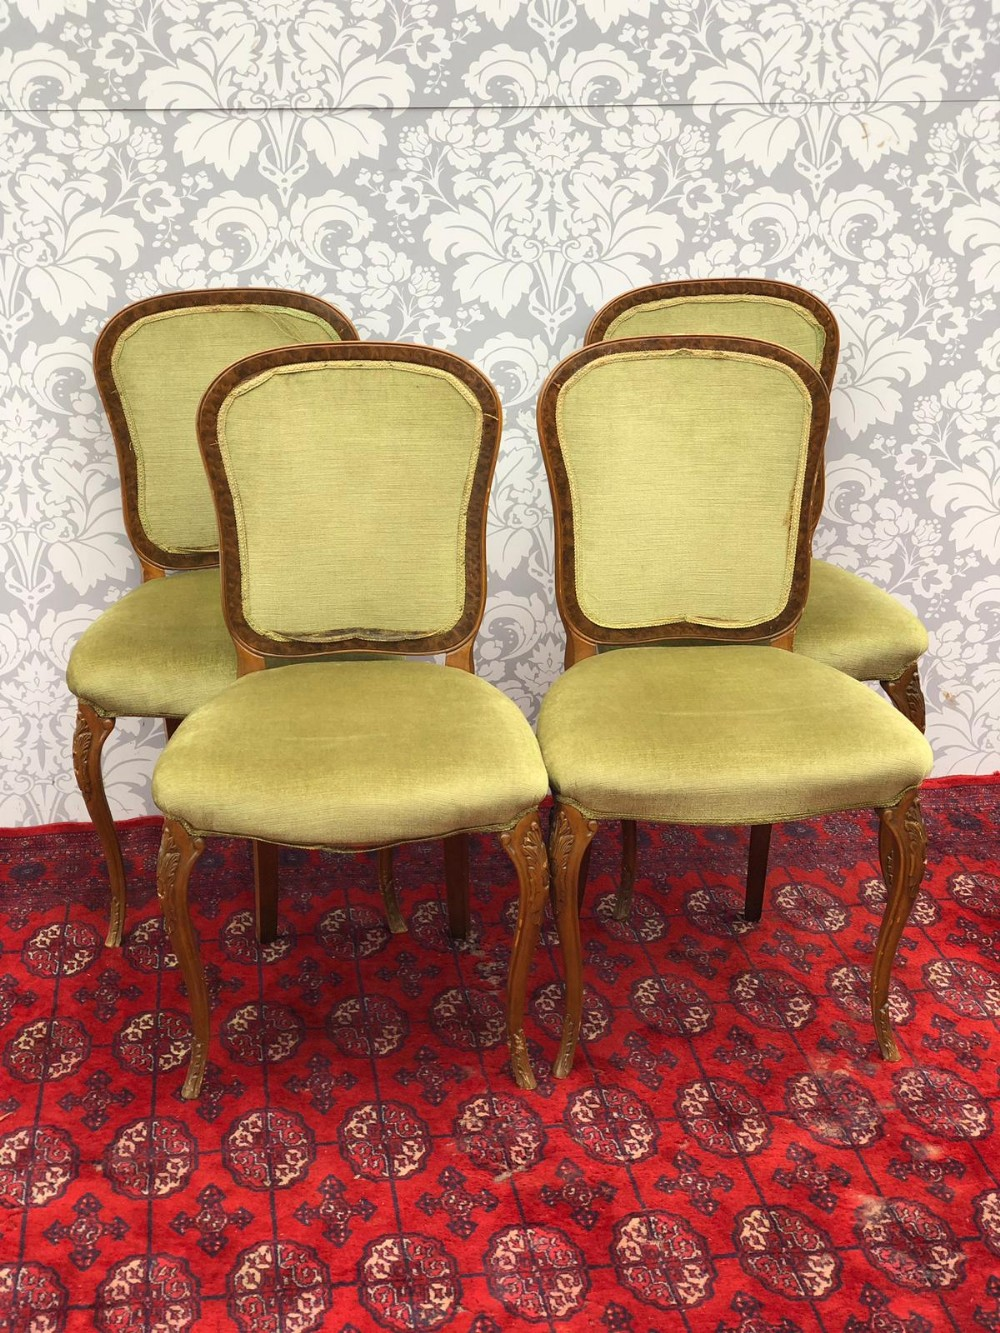 a set of four french walnut framed upholstered chairs with cabriole legs